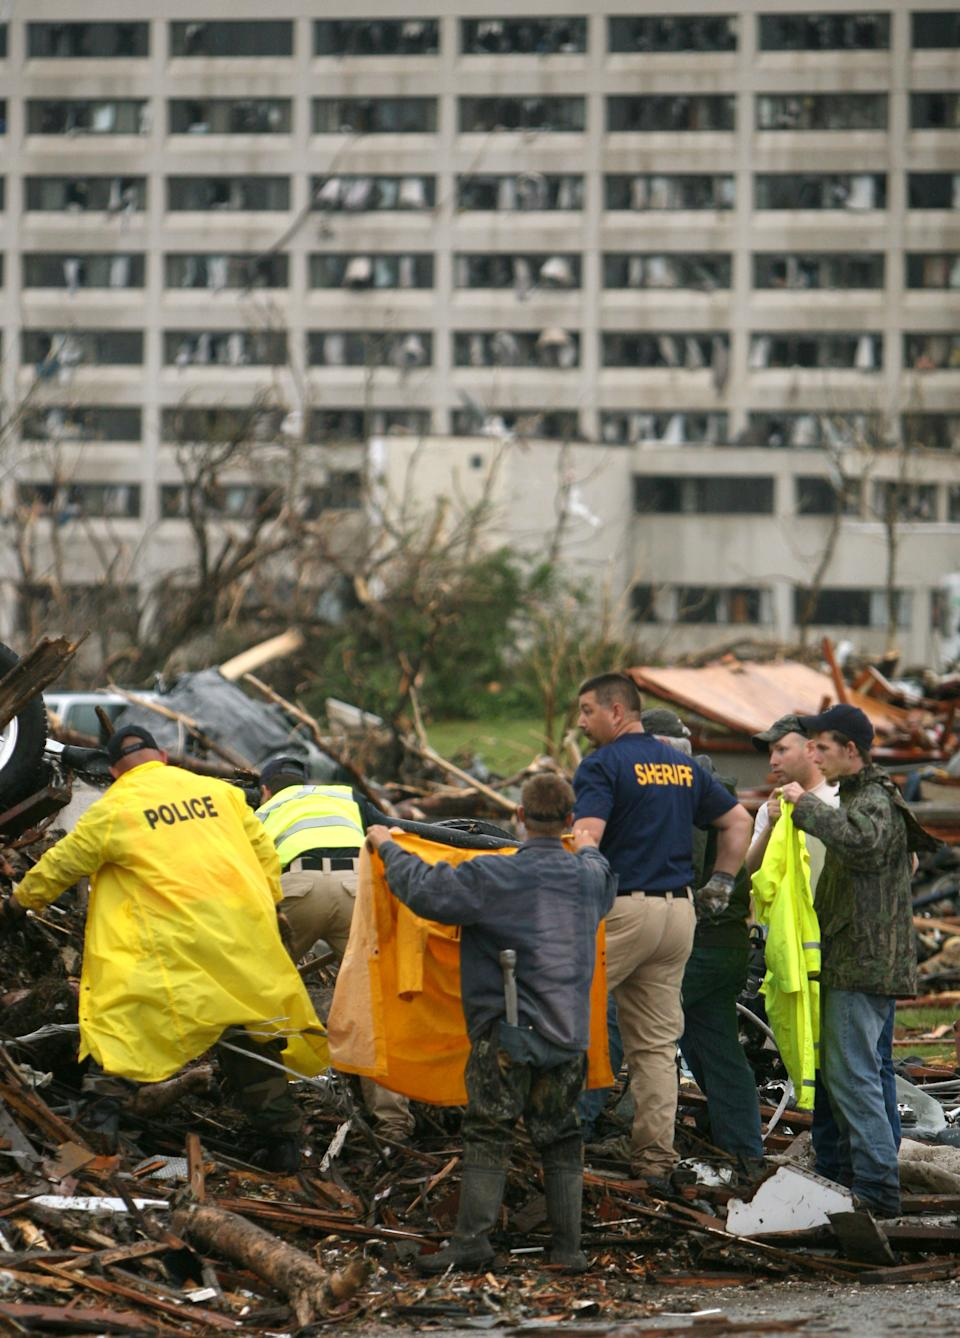 Emergency personnel excavate a body from the wreckage of a home near the St. John's Regional Medical Center in Joplin, Mo., Monday, May 23, 2011. A destructive tornado moved through the city on Sunday evening, killing at least 89 people and injuring hundreds more. (AP Photo/Mark Schiefelbein)